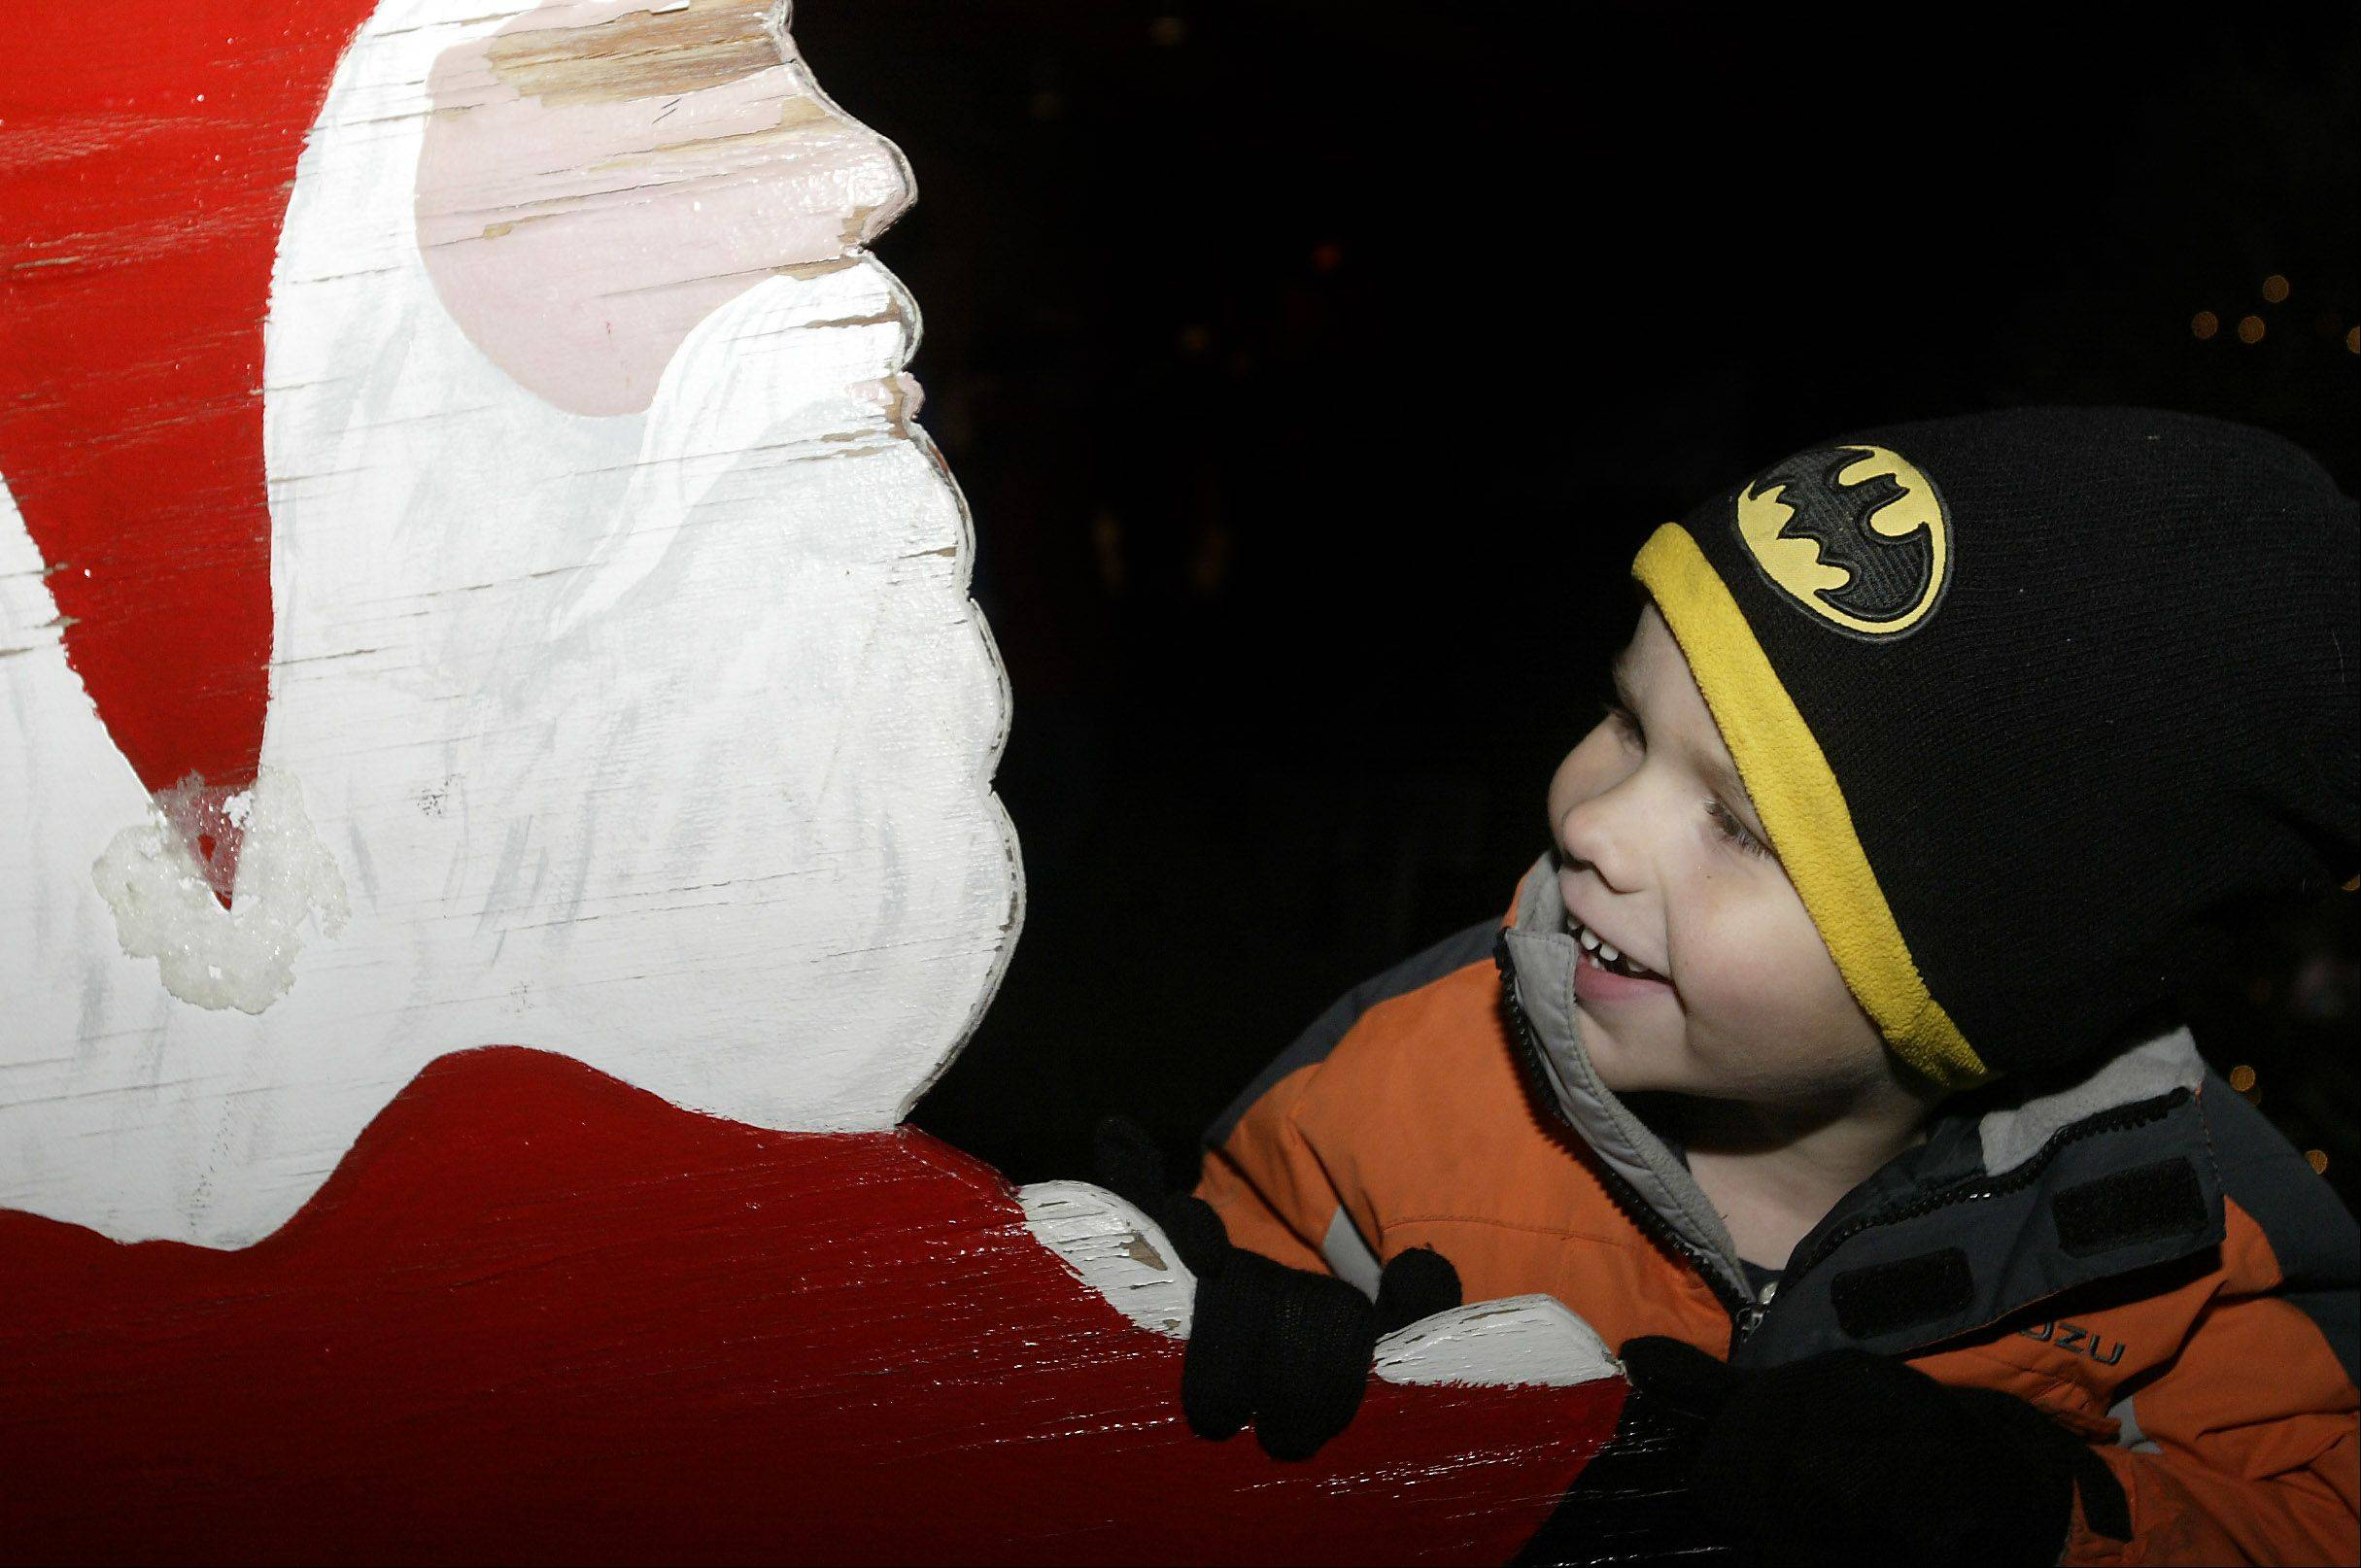 Trent Thiem of Batavia examines a wooden Santa during the 2011 Celebration of Lights Festival Sunday in Batavia. This year's festival on Sunday will feature a community singalong, tree lighting ceremony, story hour, visit with Santa and more.